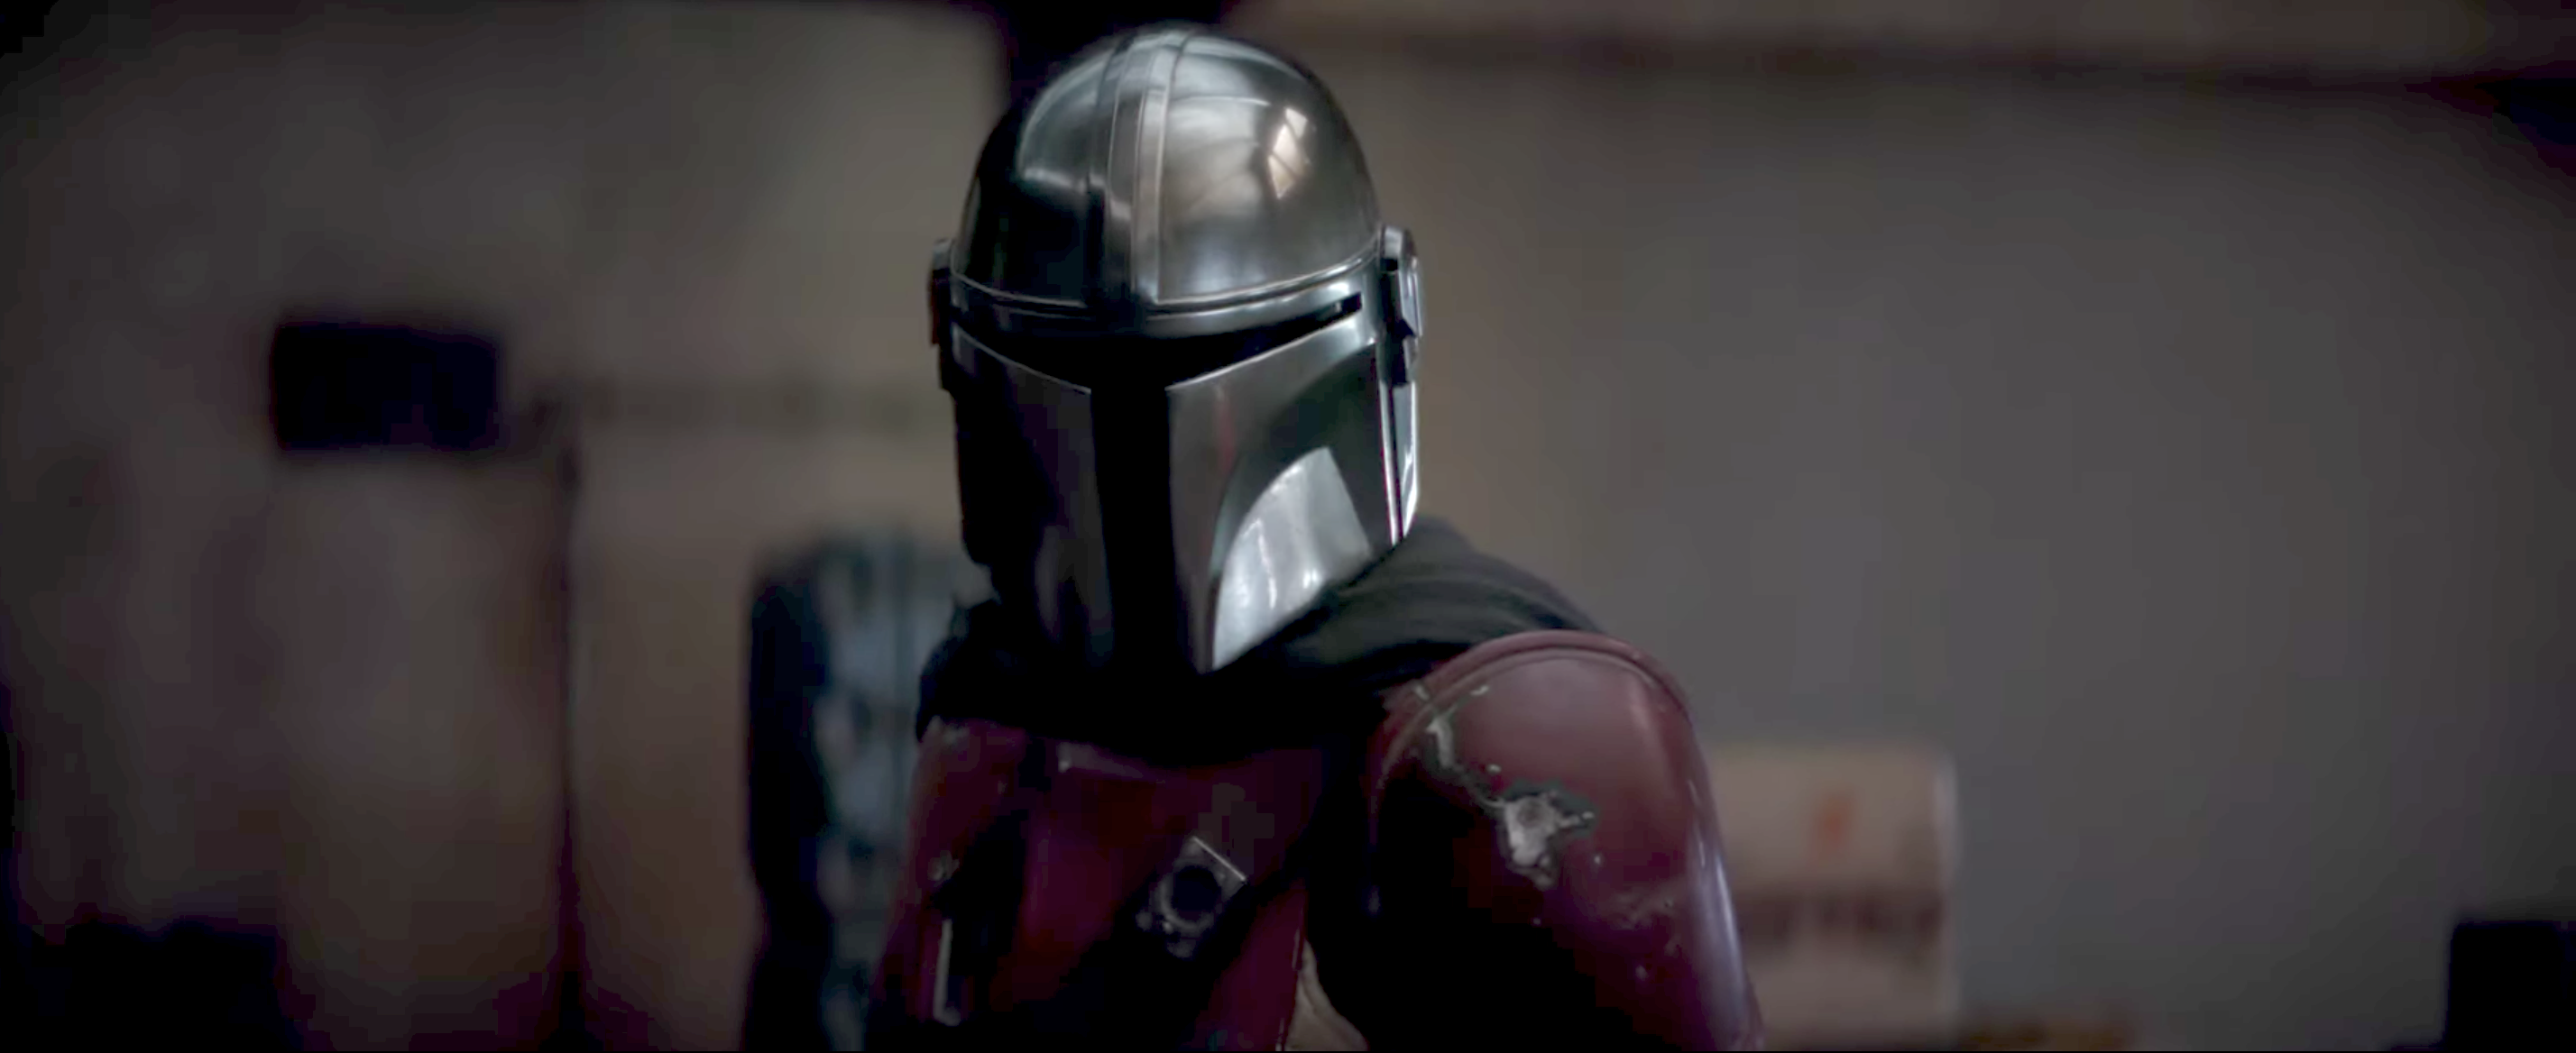 Boba Fett just made (another?) appearance on The Mandalorian – we think